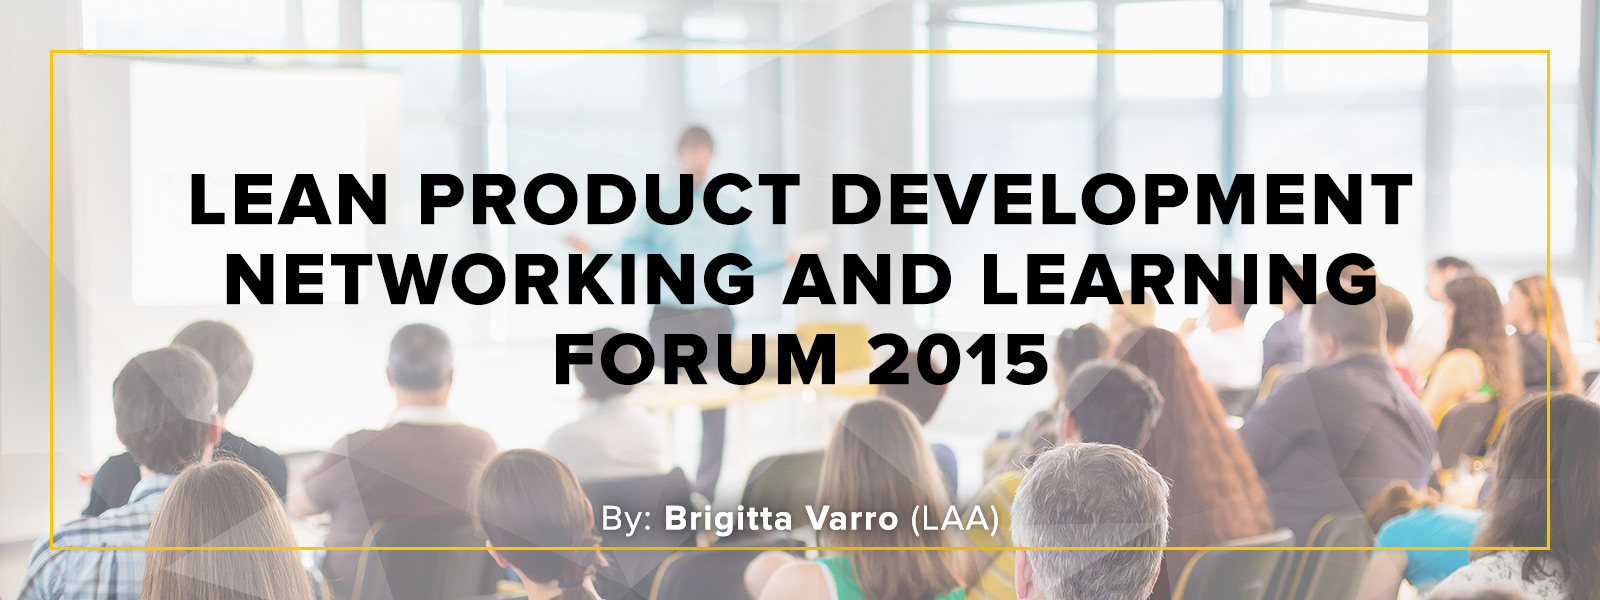 laa-blog-forum2015after